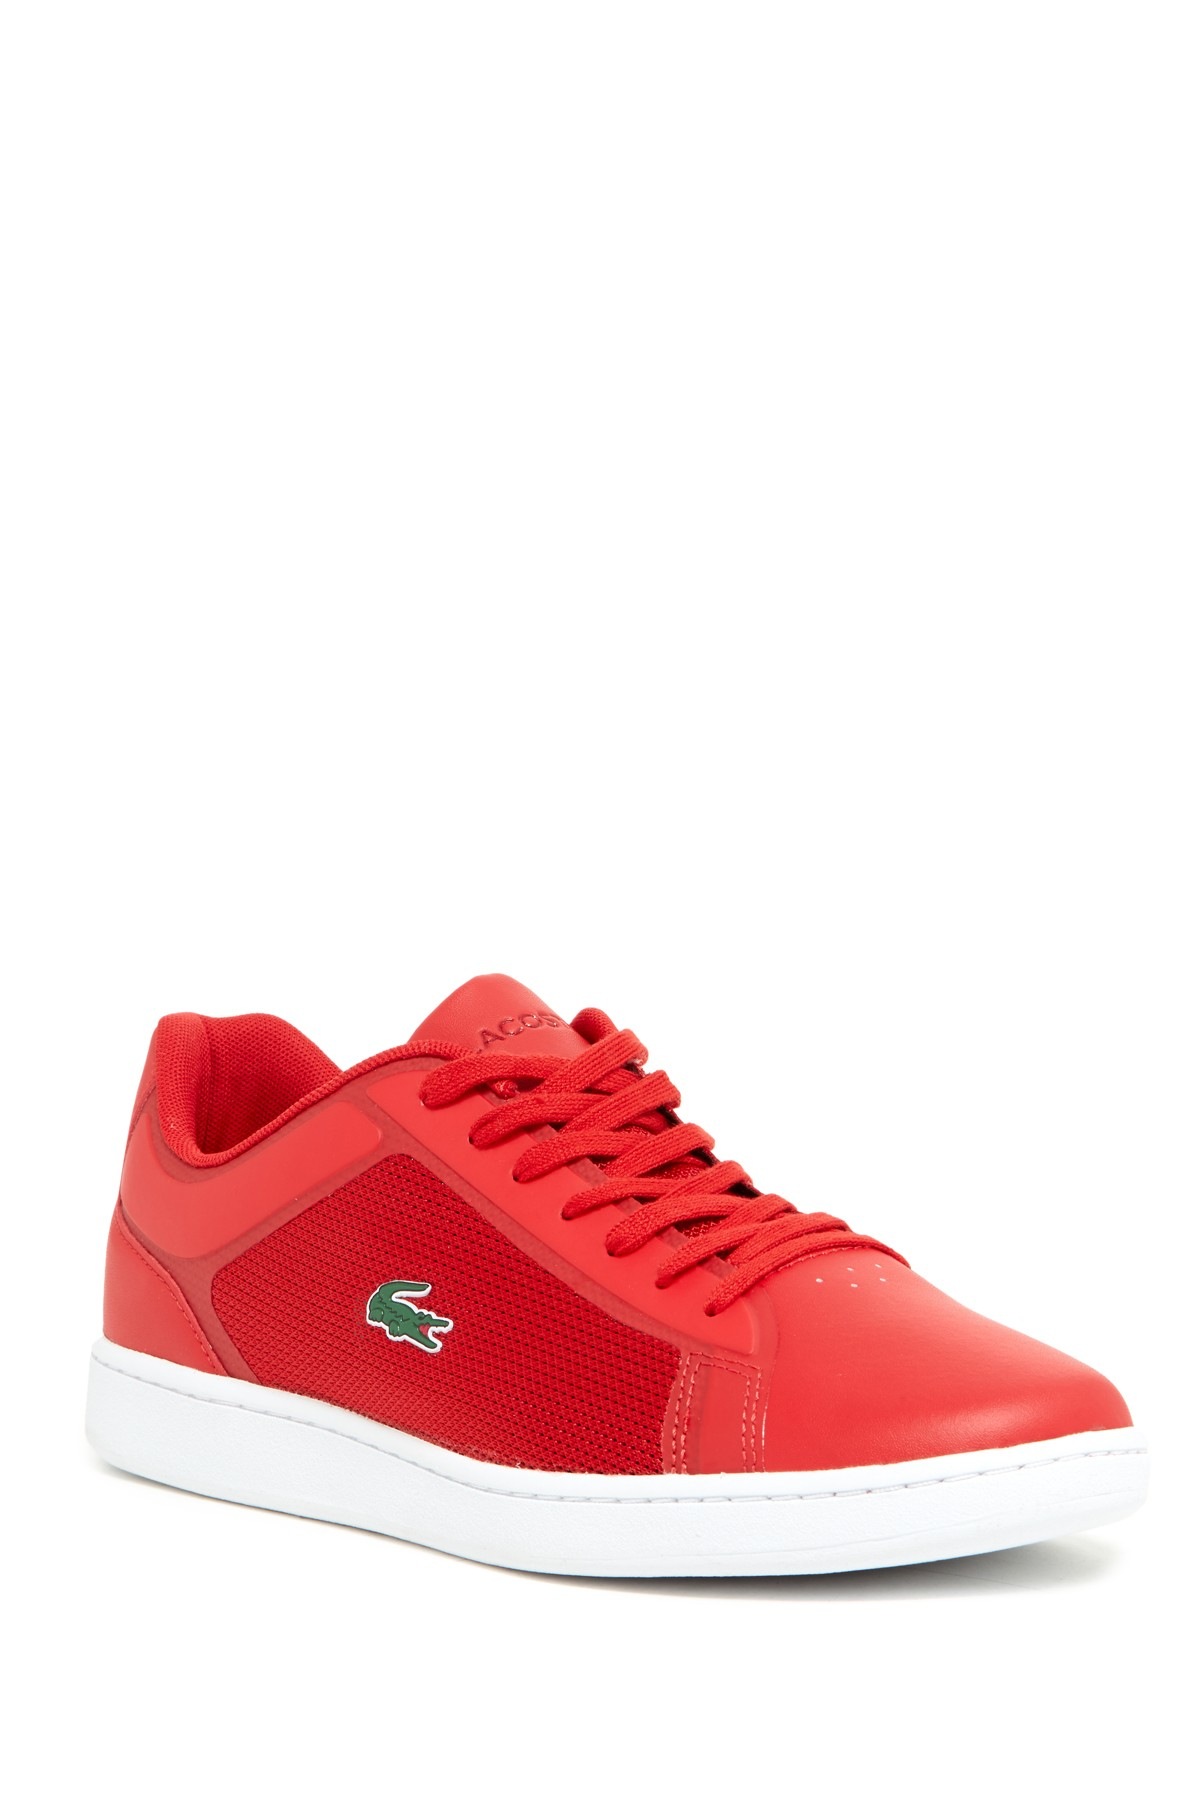 lacoste endliner laceup sneaker in red for men lyst